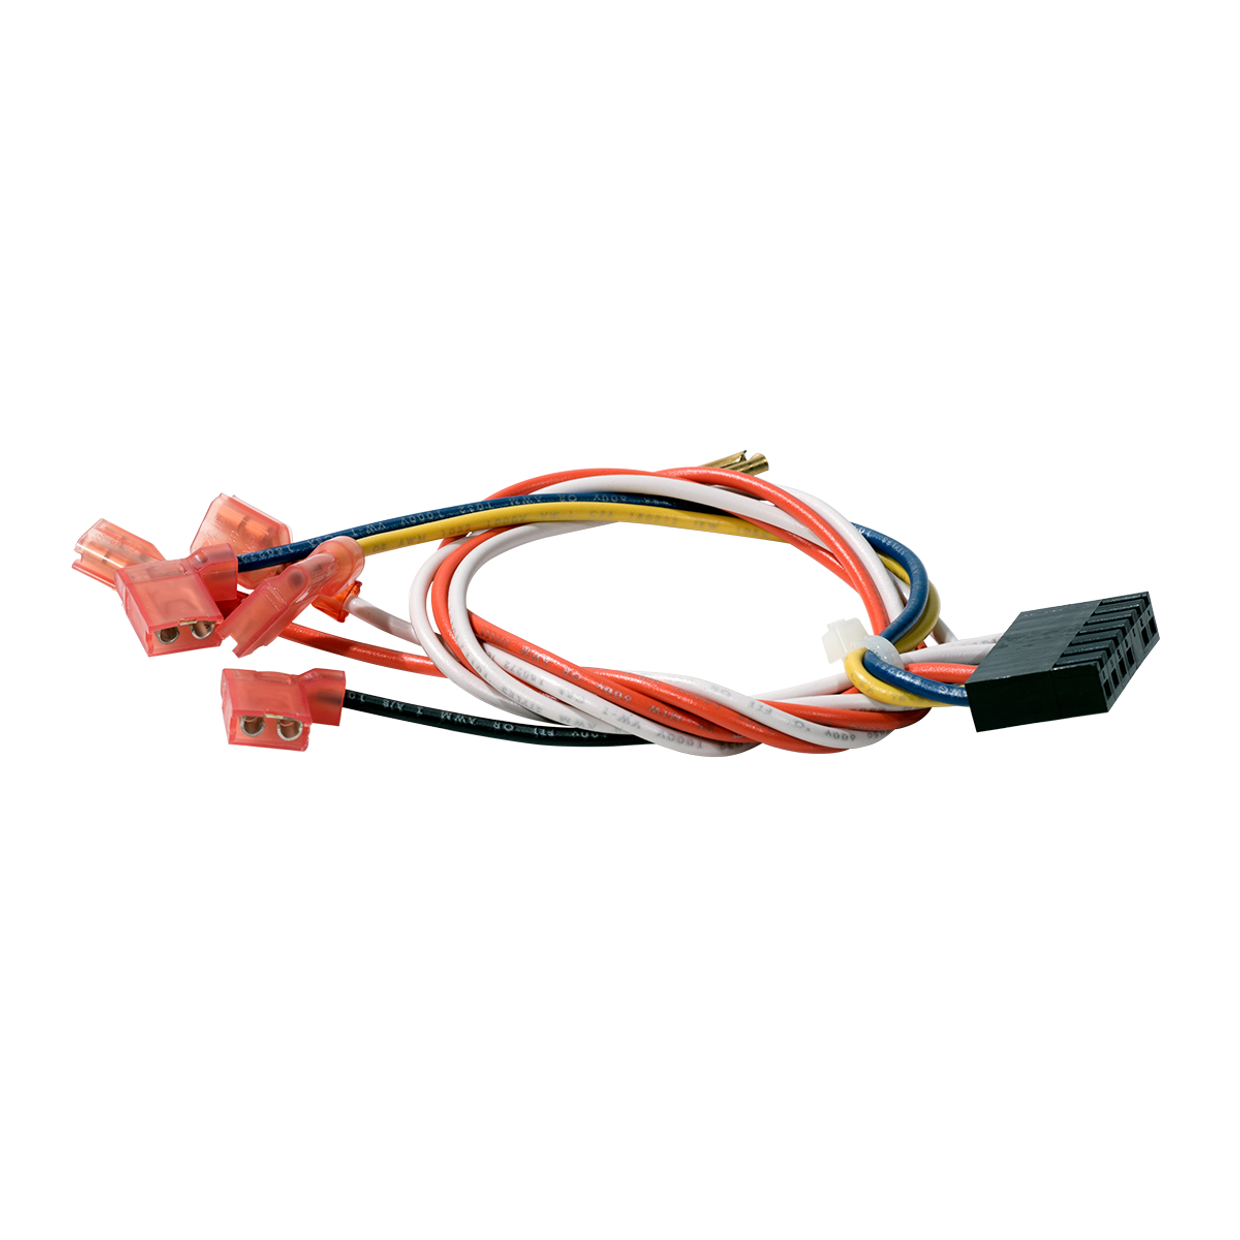 041C5657-wire-harness-kit-high-voltage-3/4hp-hero